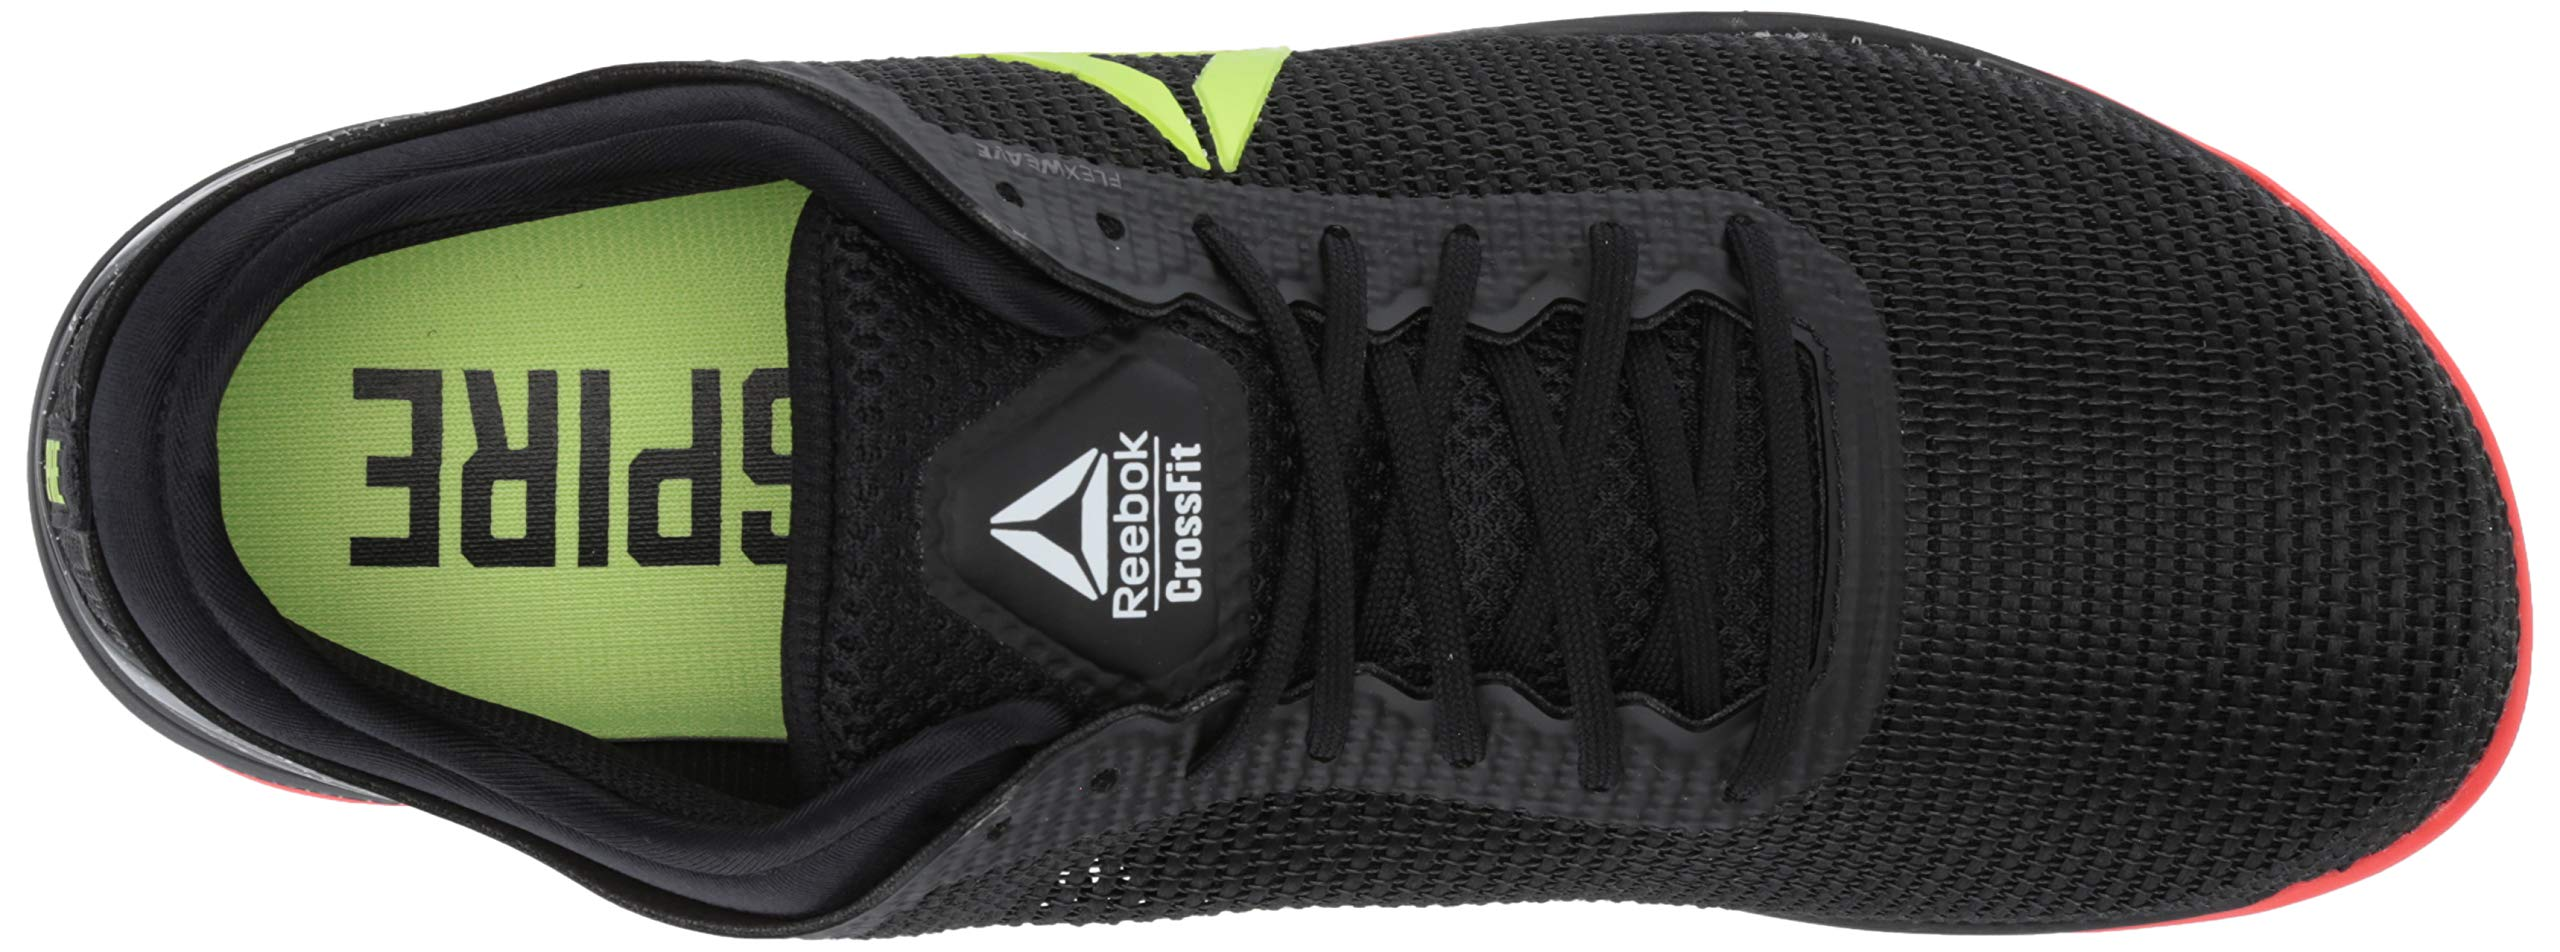 Reebok Men's CROSSFIT Nano 8.0 Flexweave Cross Trainer, Black/Neon Red/Neon Lime/White, 6.5 M US by Reebok (Image #12)